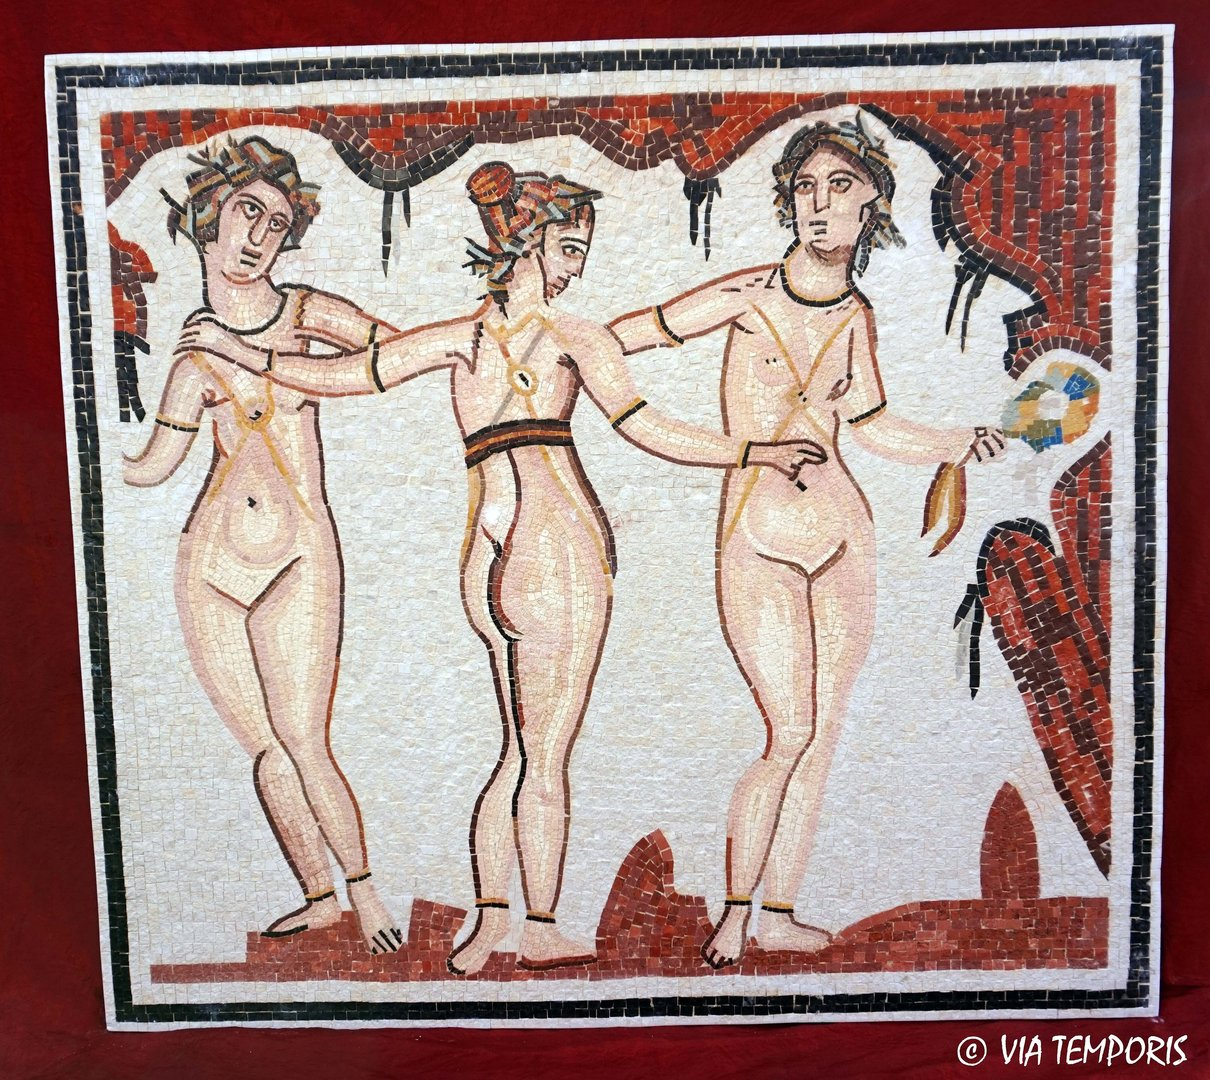 ROMAN MOSAIC - MOSAIC OF THE THREE GRACES